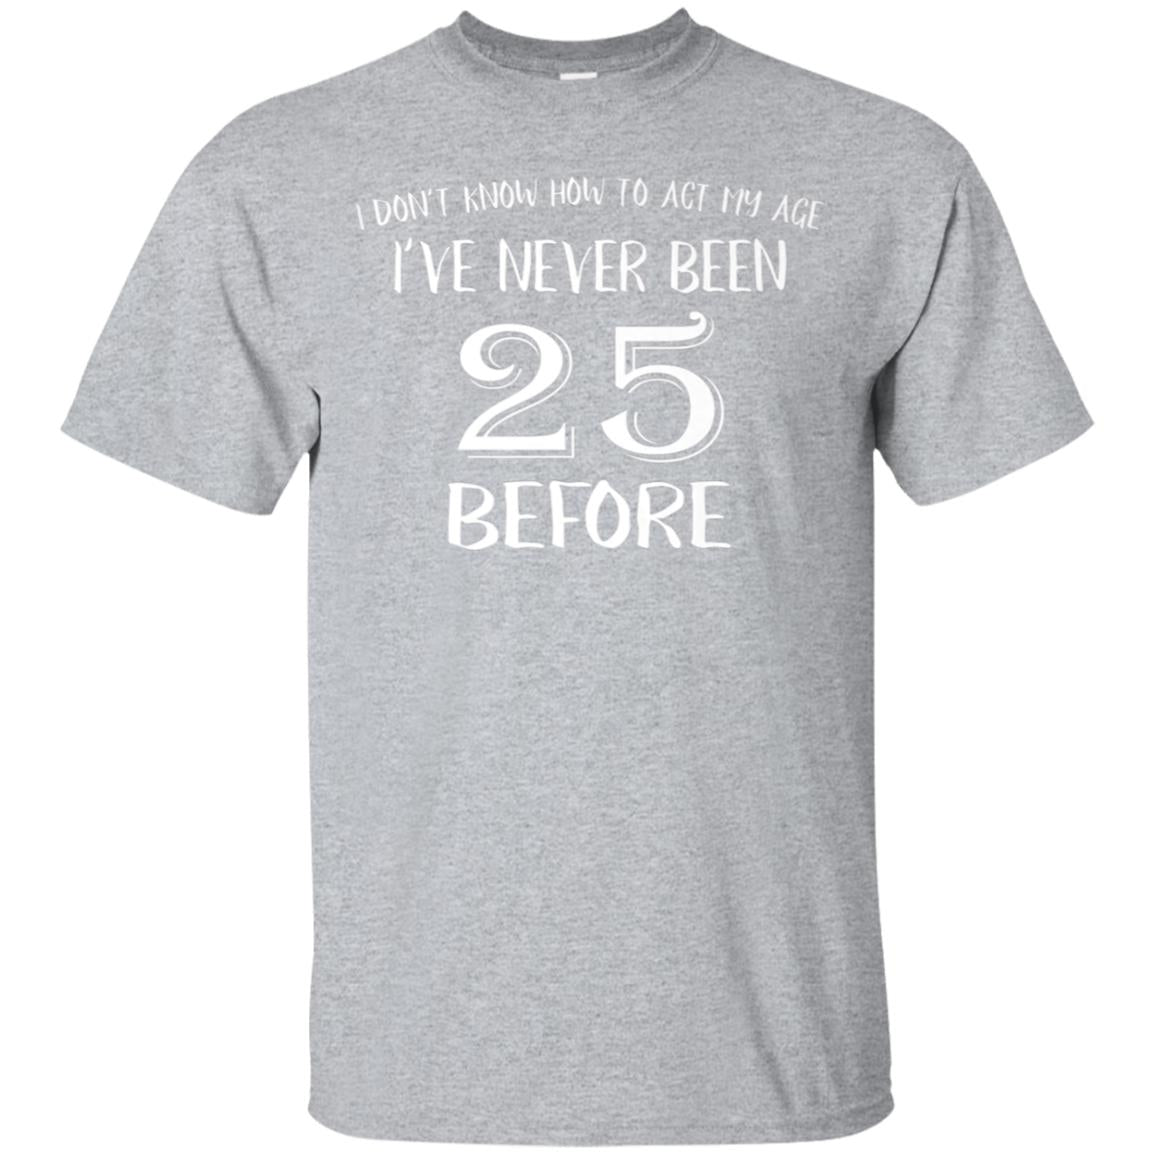 25 Year Old T-Shirt - I've Never Been 25 Before 99promocode